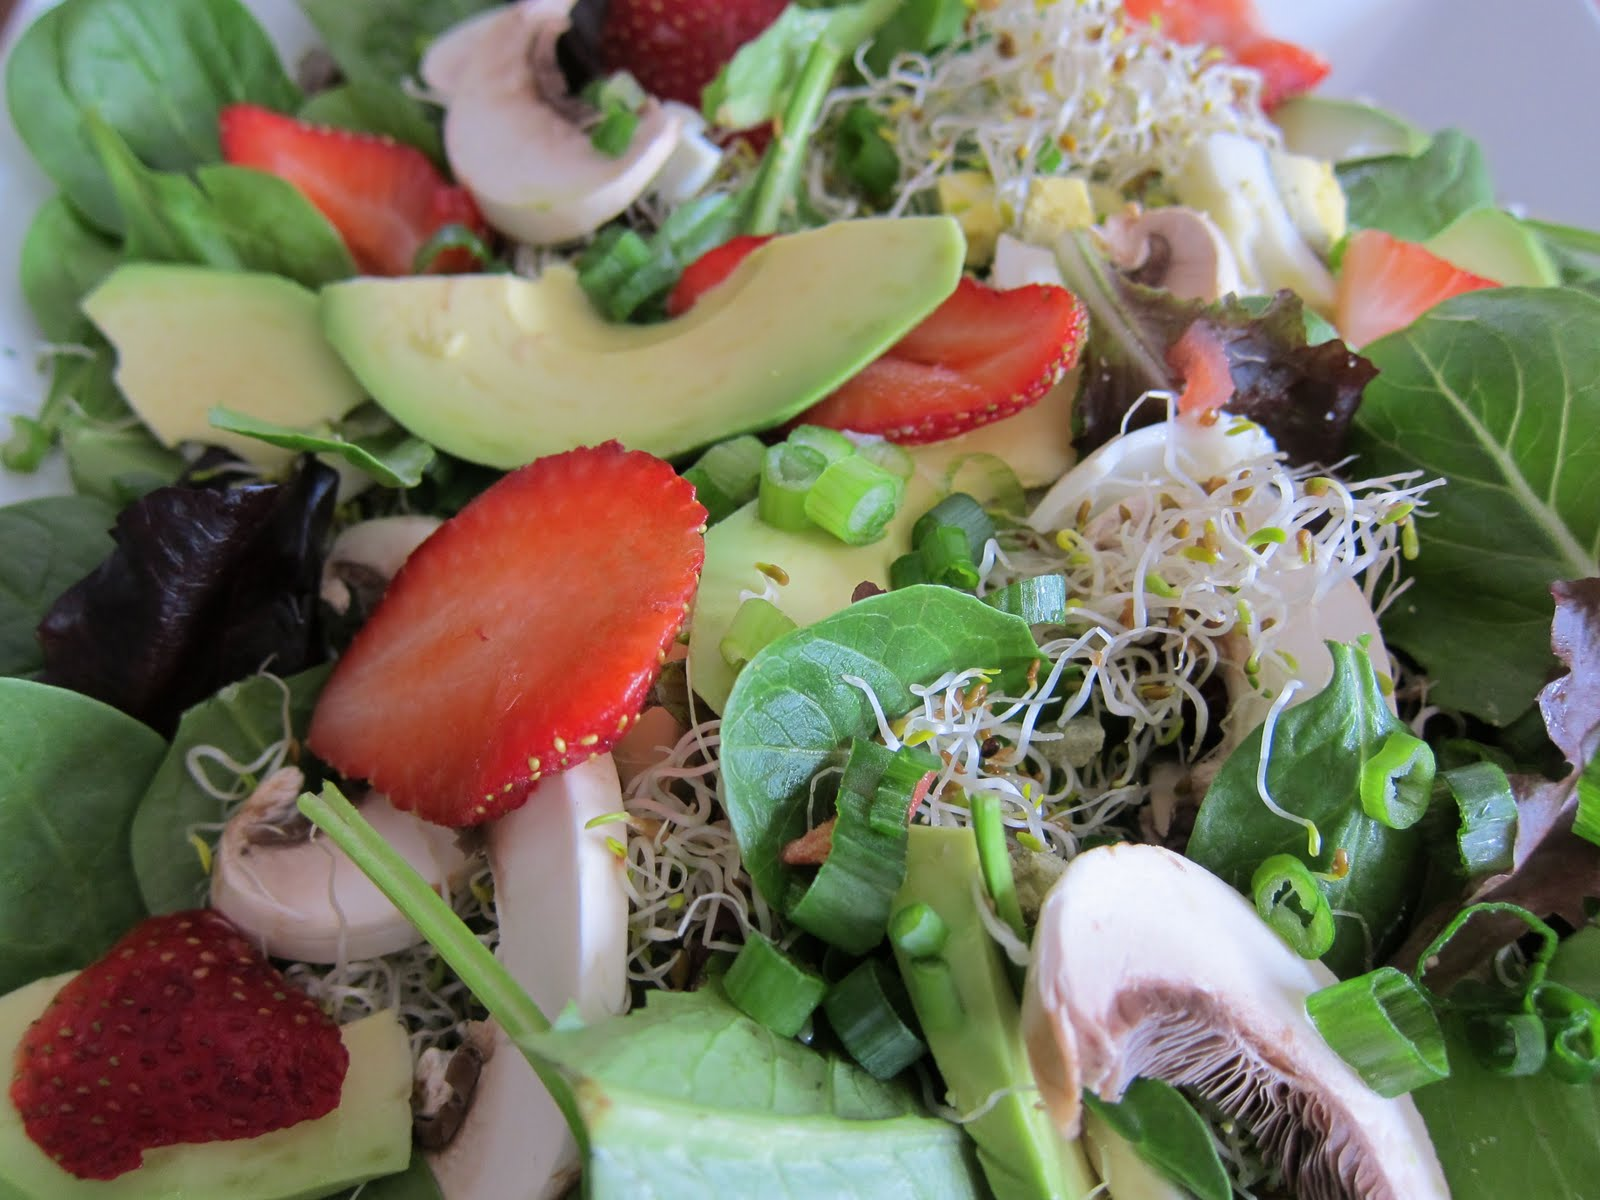 Mixed Greens, Avocado, Sprouts, Mushrooms, and Strawberries